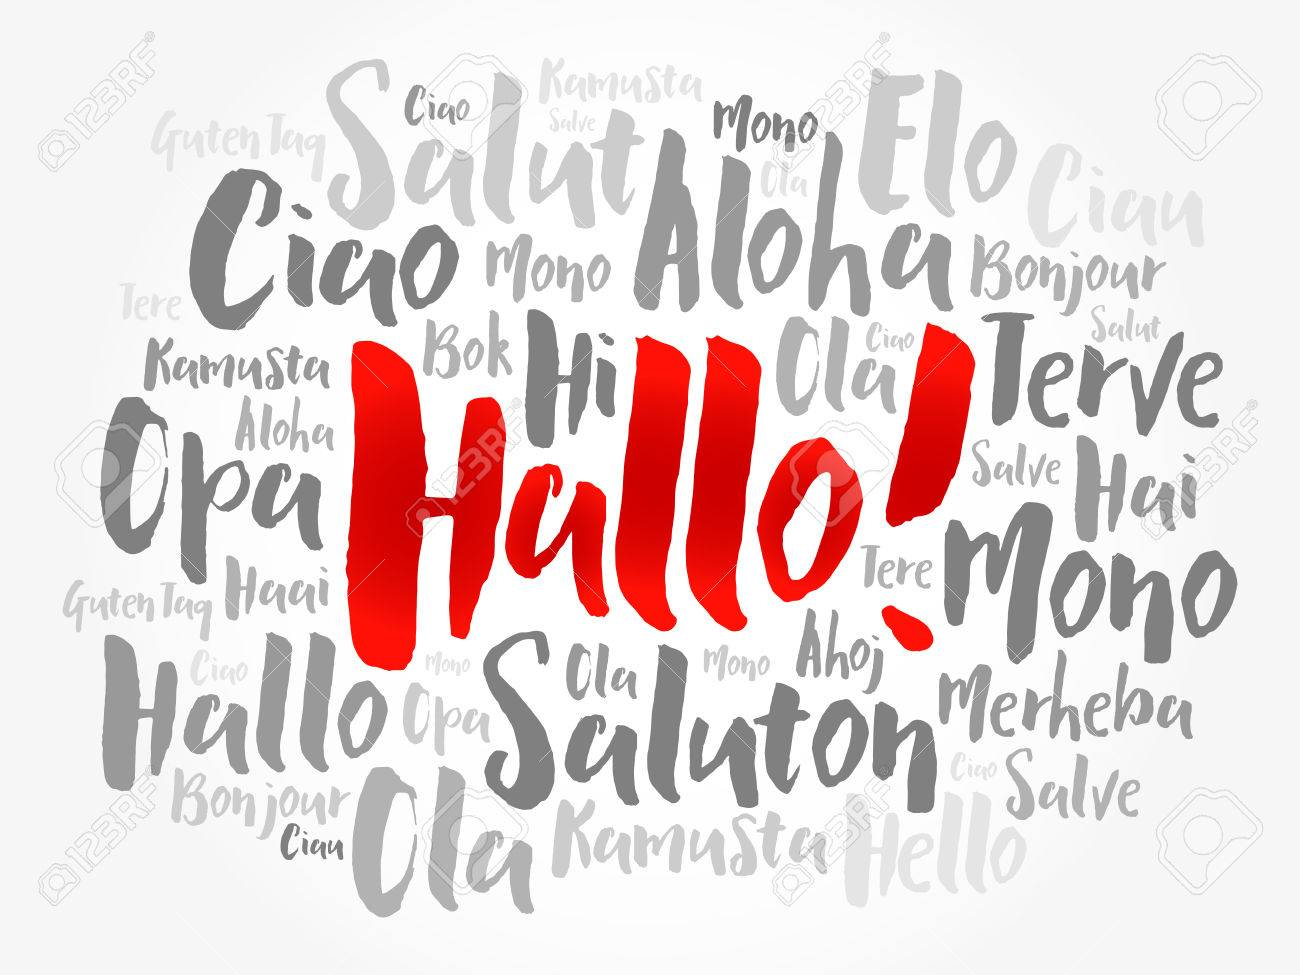 hallo hello greeting in german word cloud in different languages